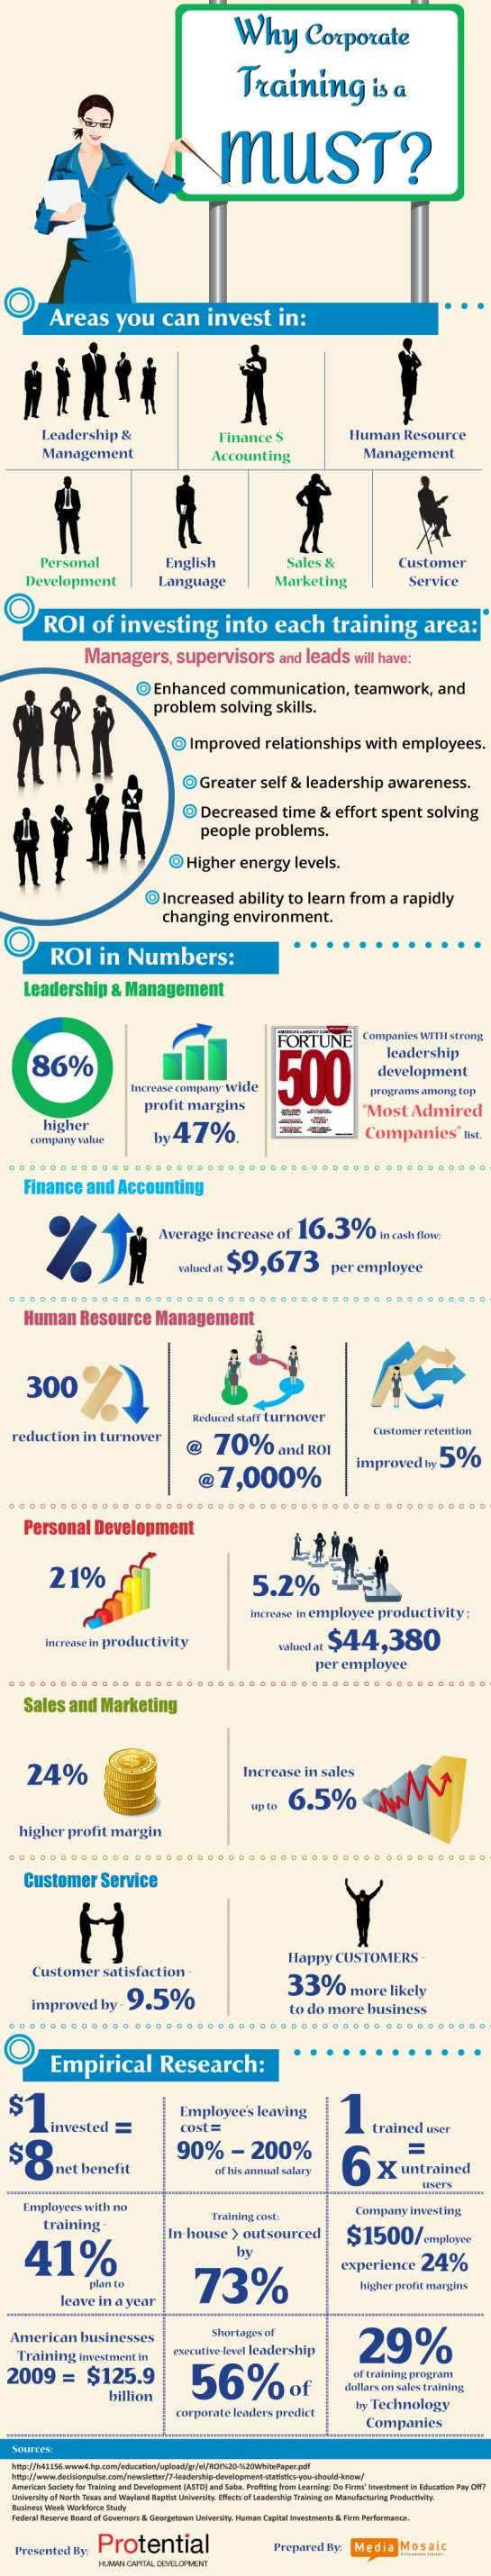 Infographic for Protential